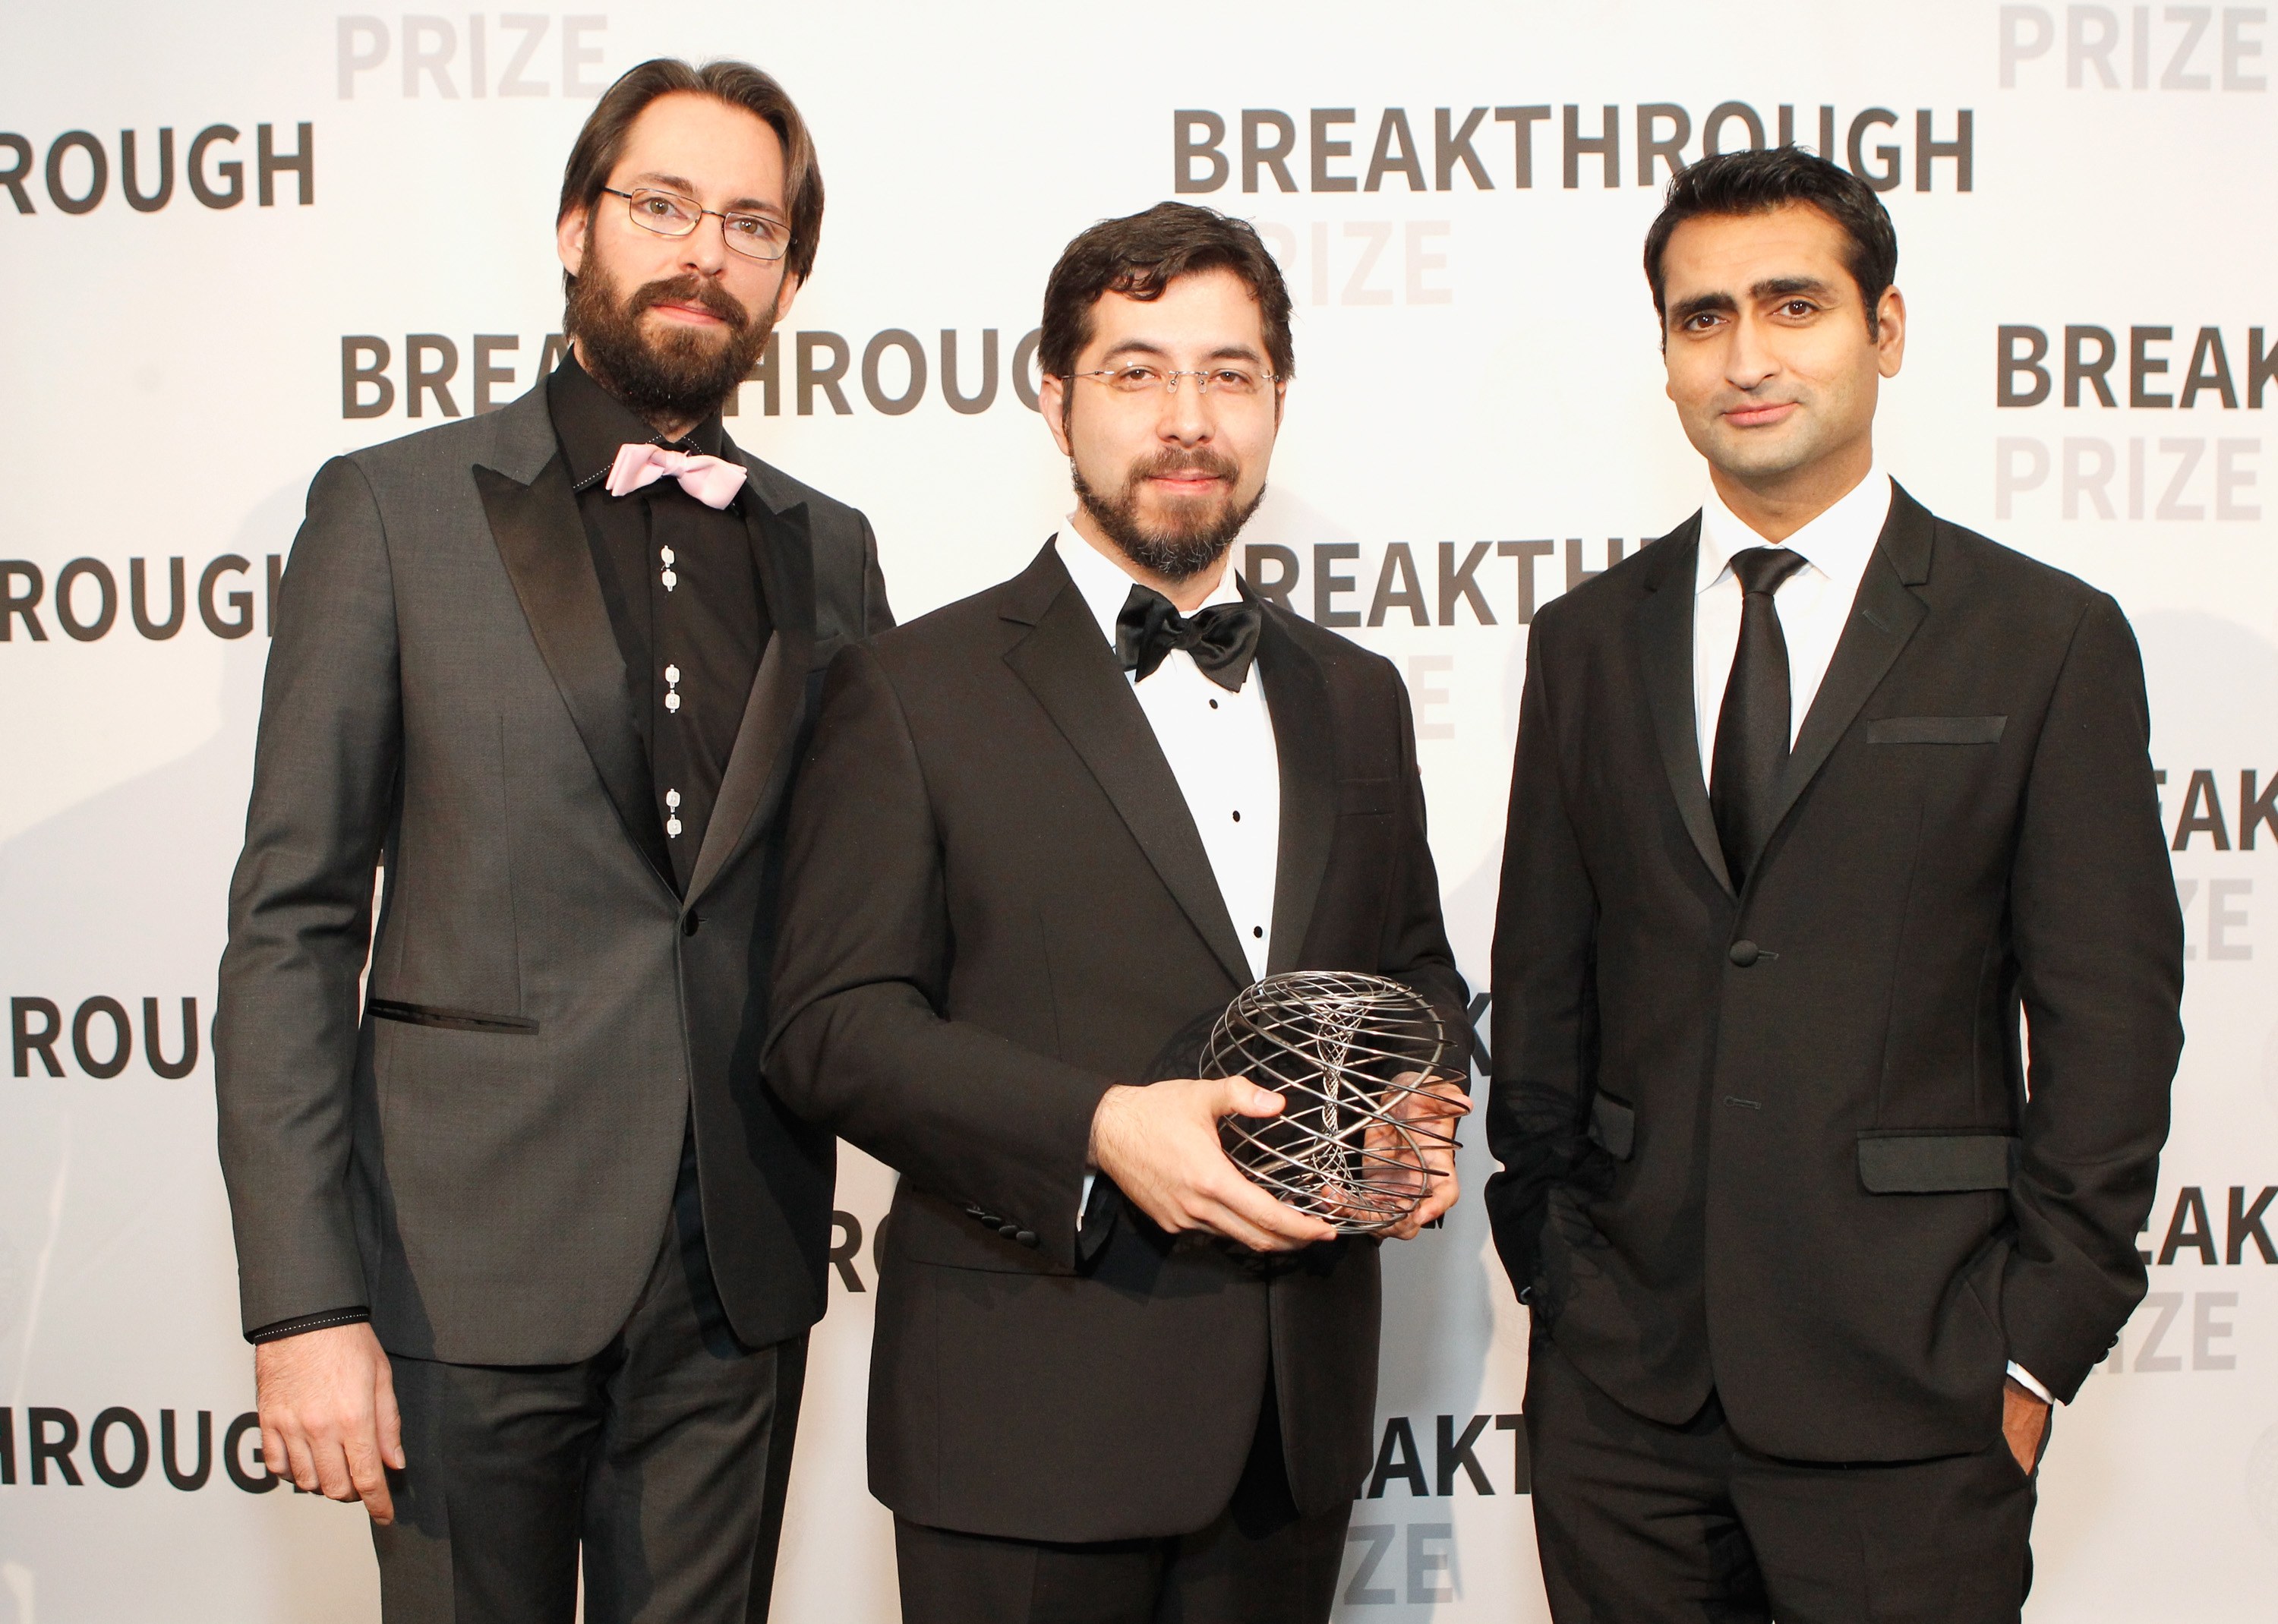 Actor Martin Starr, Associate Professor, Edward S. Boyden, PhD, posing with the 2016 Breakthrough Prize in Life Sciences, and actor Kumail Nanjiani attend the 2016 Breakthrough Prize Ceremony on Sunday.